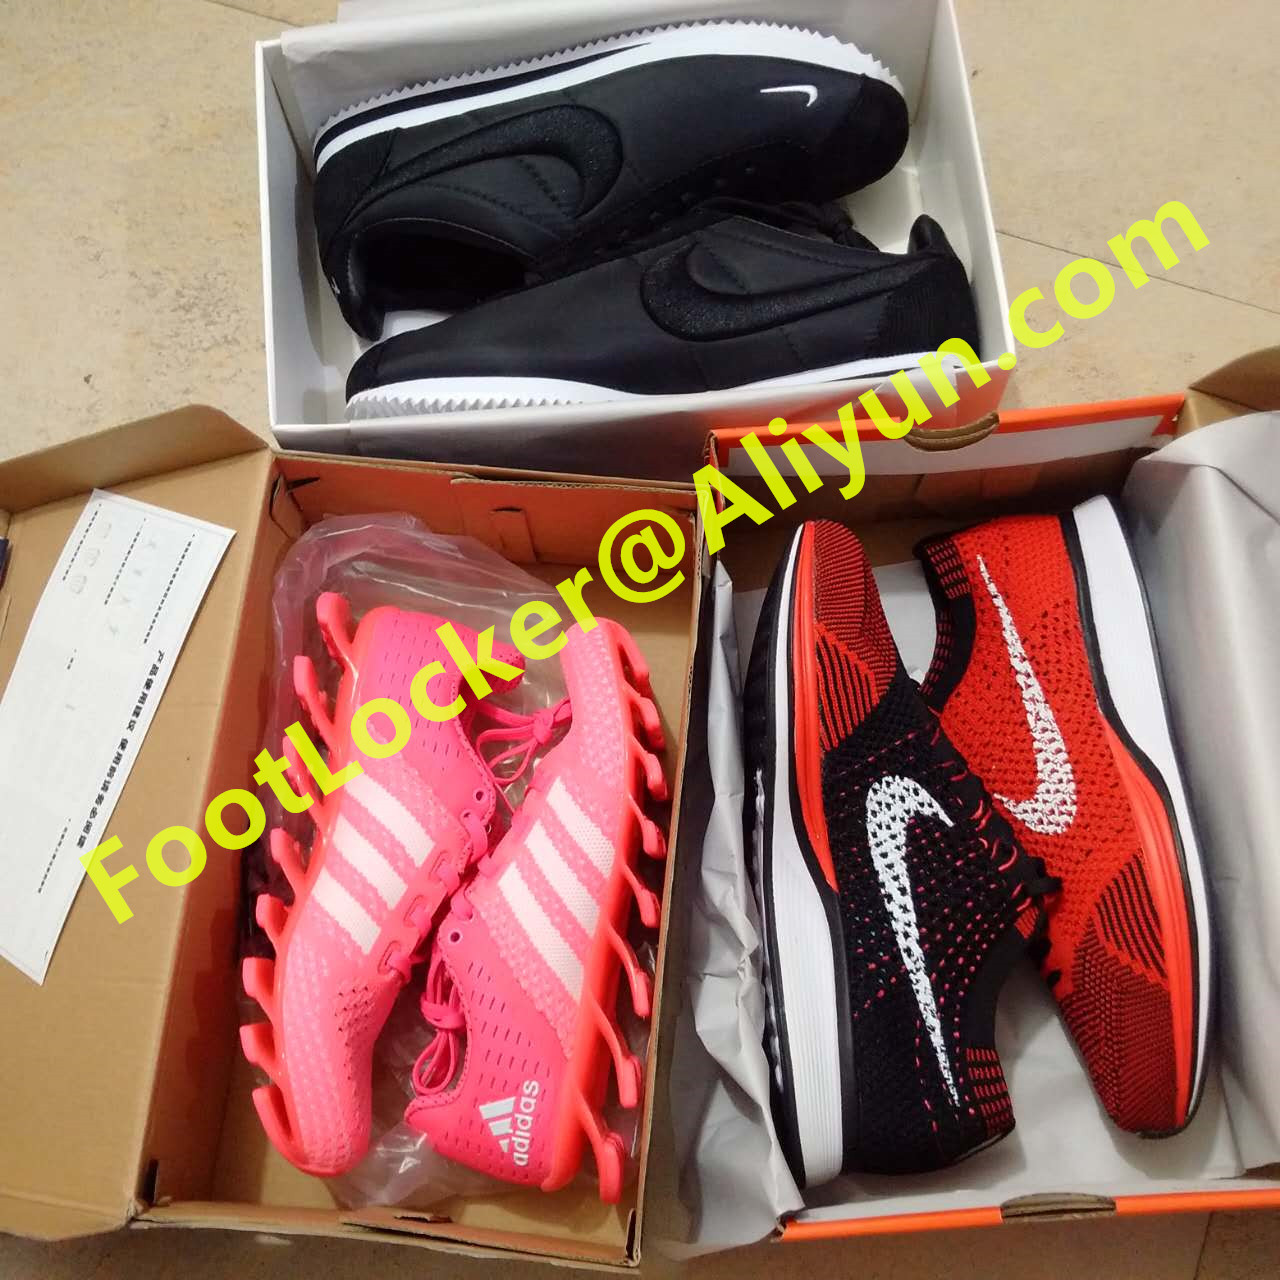 8147d645 Cheap sneaker nike,adidas,dress shoes,Balenciaga Arena Sneaker, Wholesale  and retail both accept!Yupoo Ablum shoes,Qiqifashion site